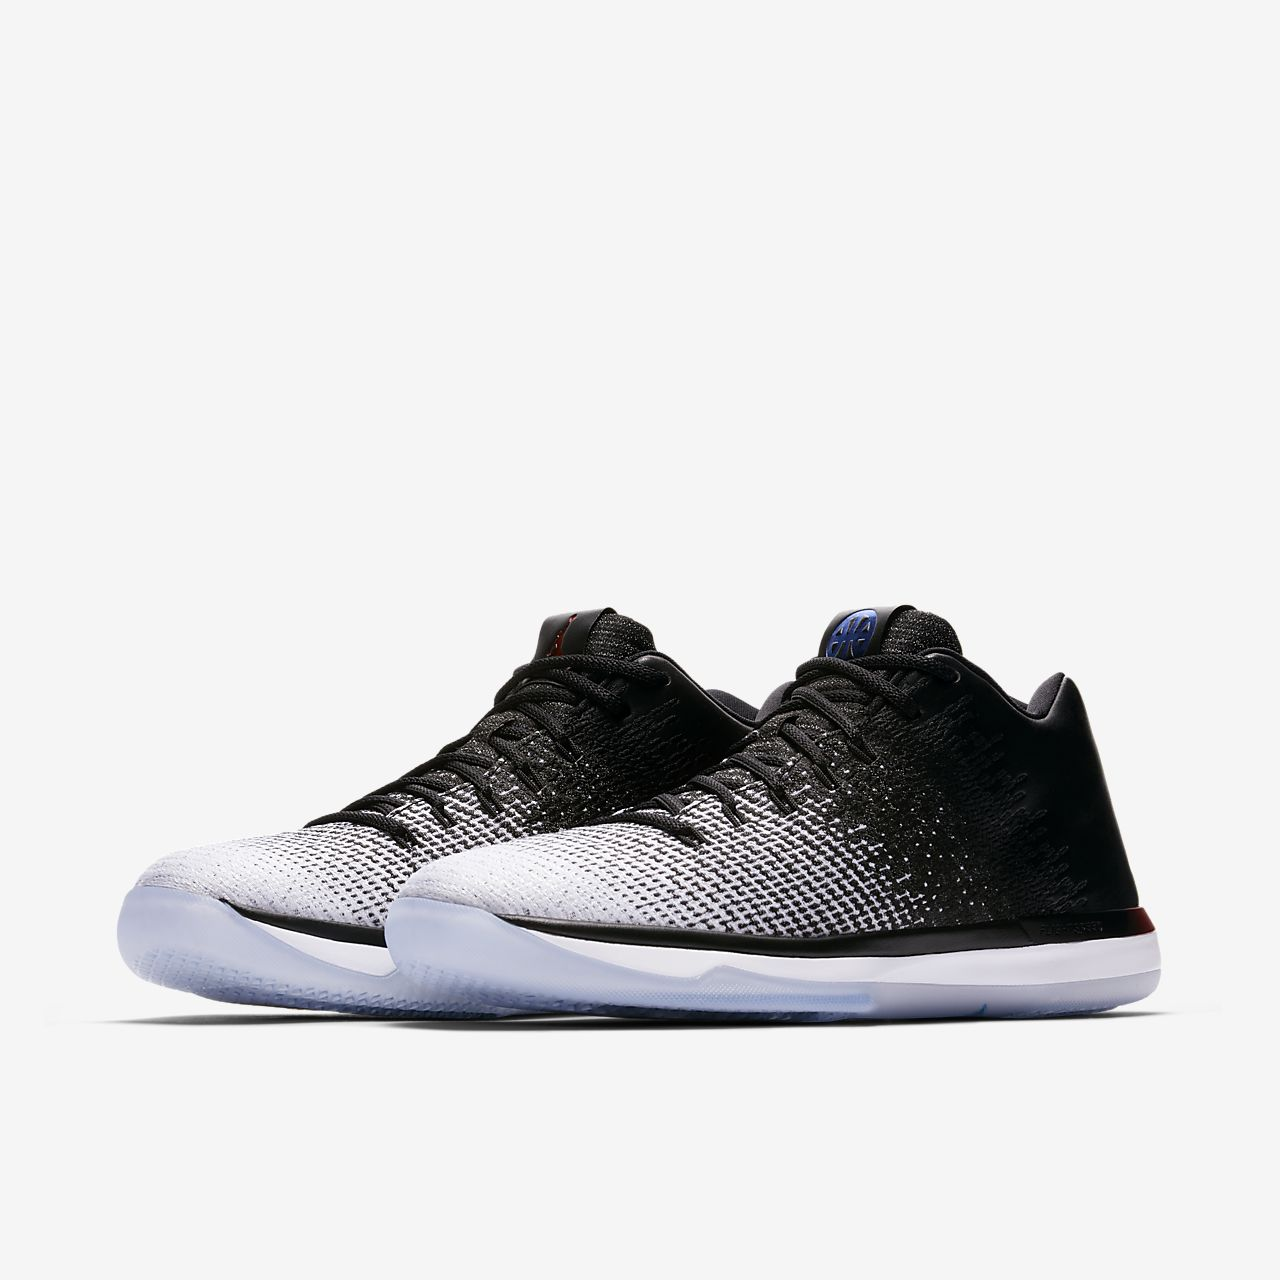 133add55d51b3f ... Quai 54 What The SZ 10 ( 921195-  air jordan 31  Air Jordan XXXI Low Q54  Mens Basketball Shoe item 7 NEW Nike Air Jordan XXXI 31 ...